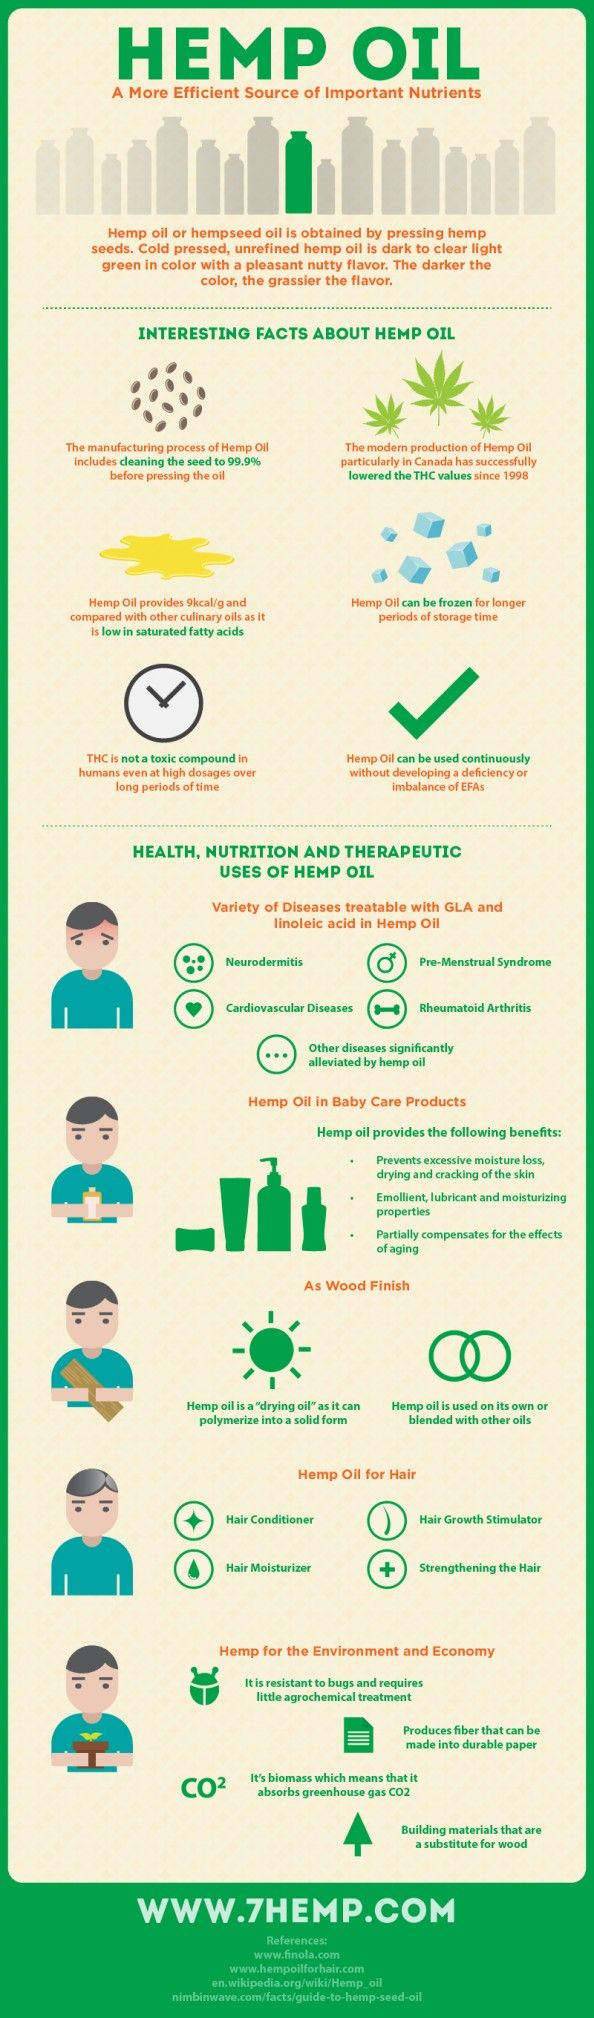 Hemp Oil: A More Efficient Source of Important Nutrients Infographic